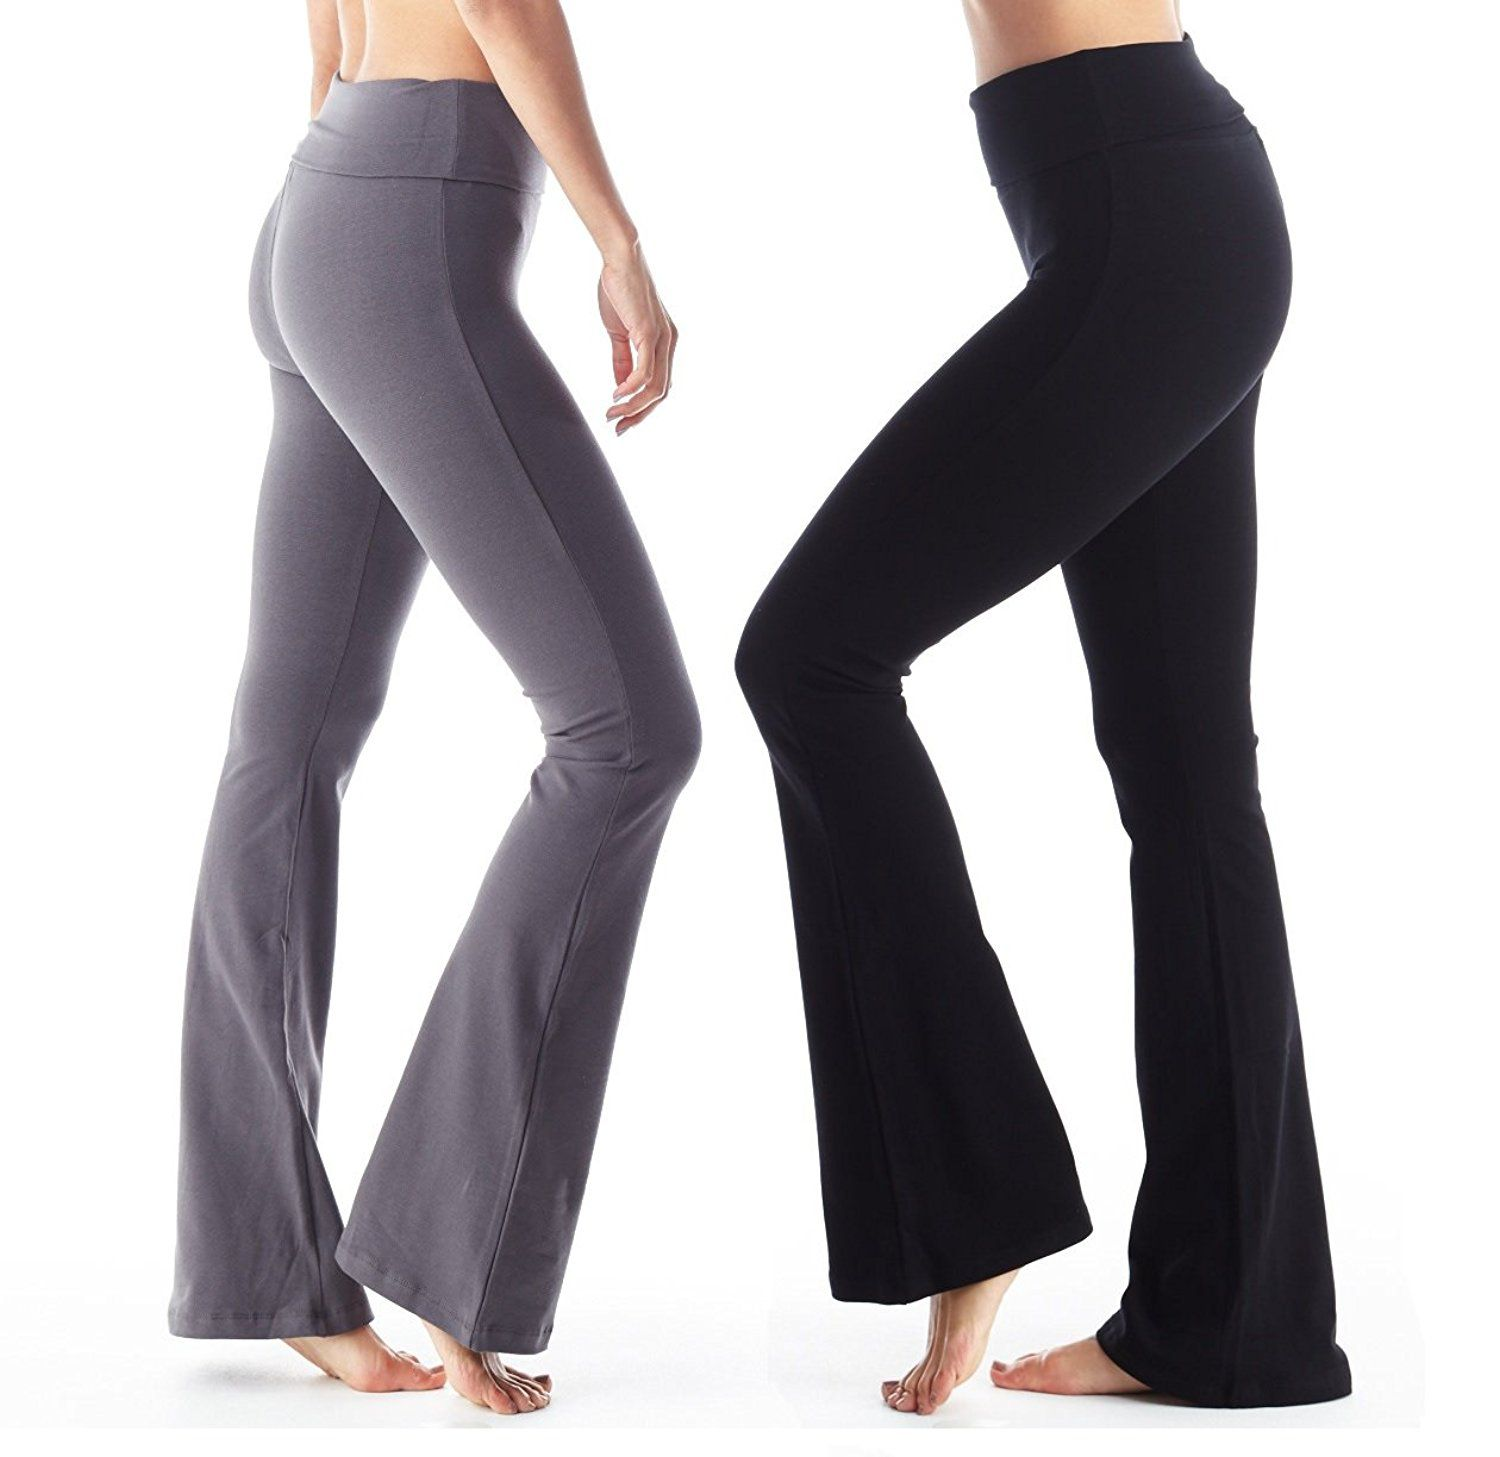 Stylish Hair Style Video What To Wear With Different Styles Of Yoga Pants